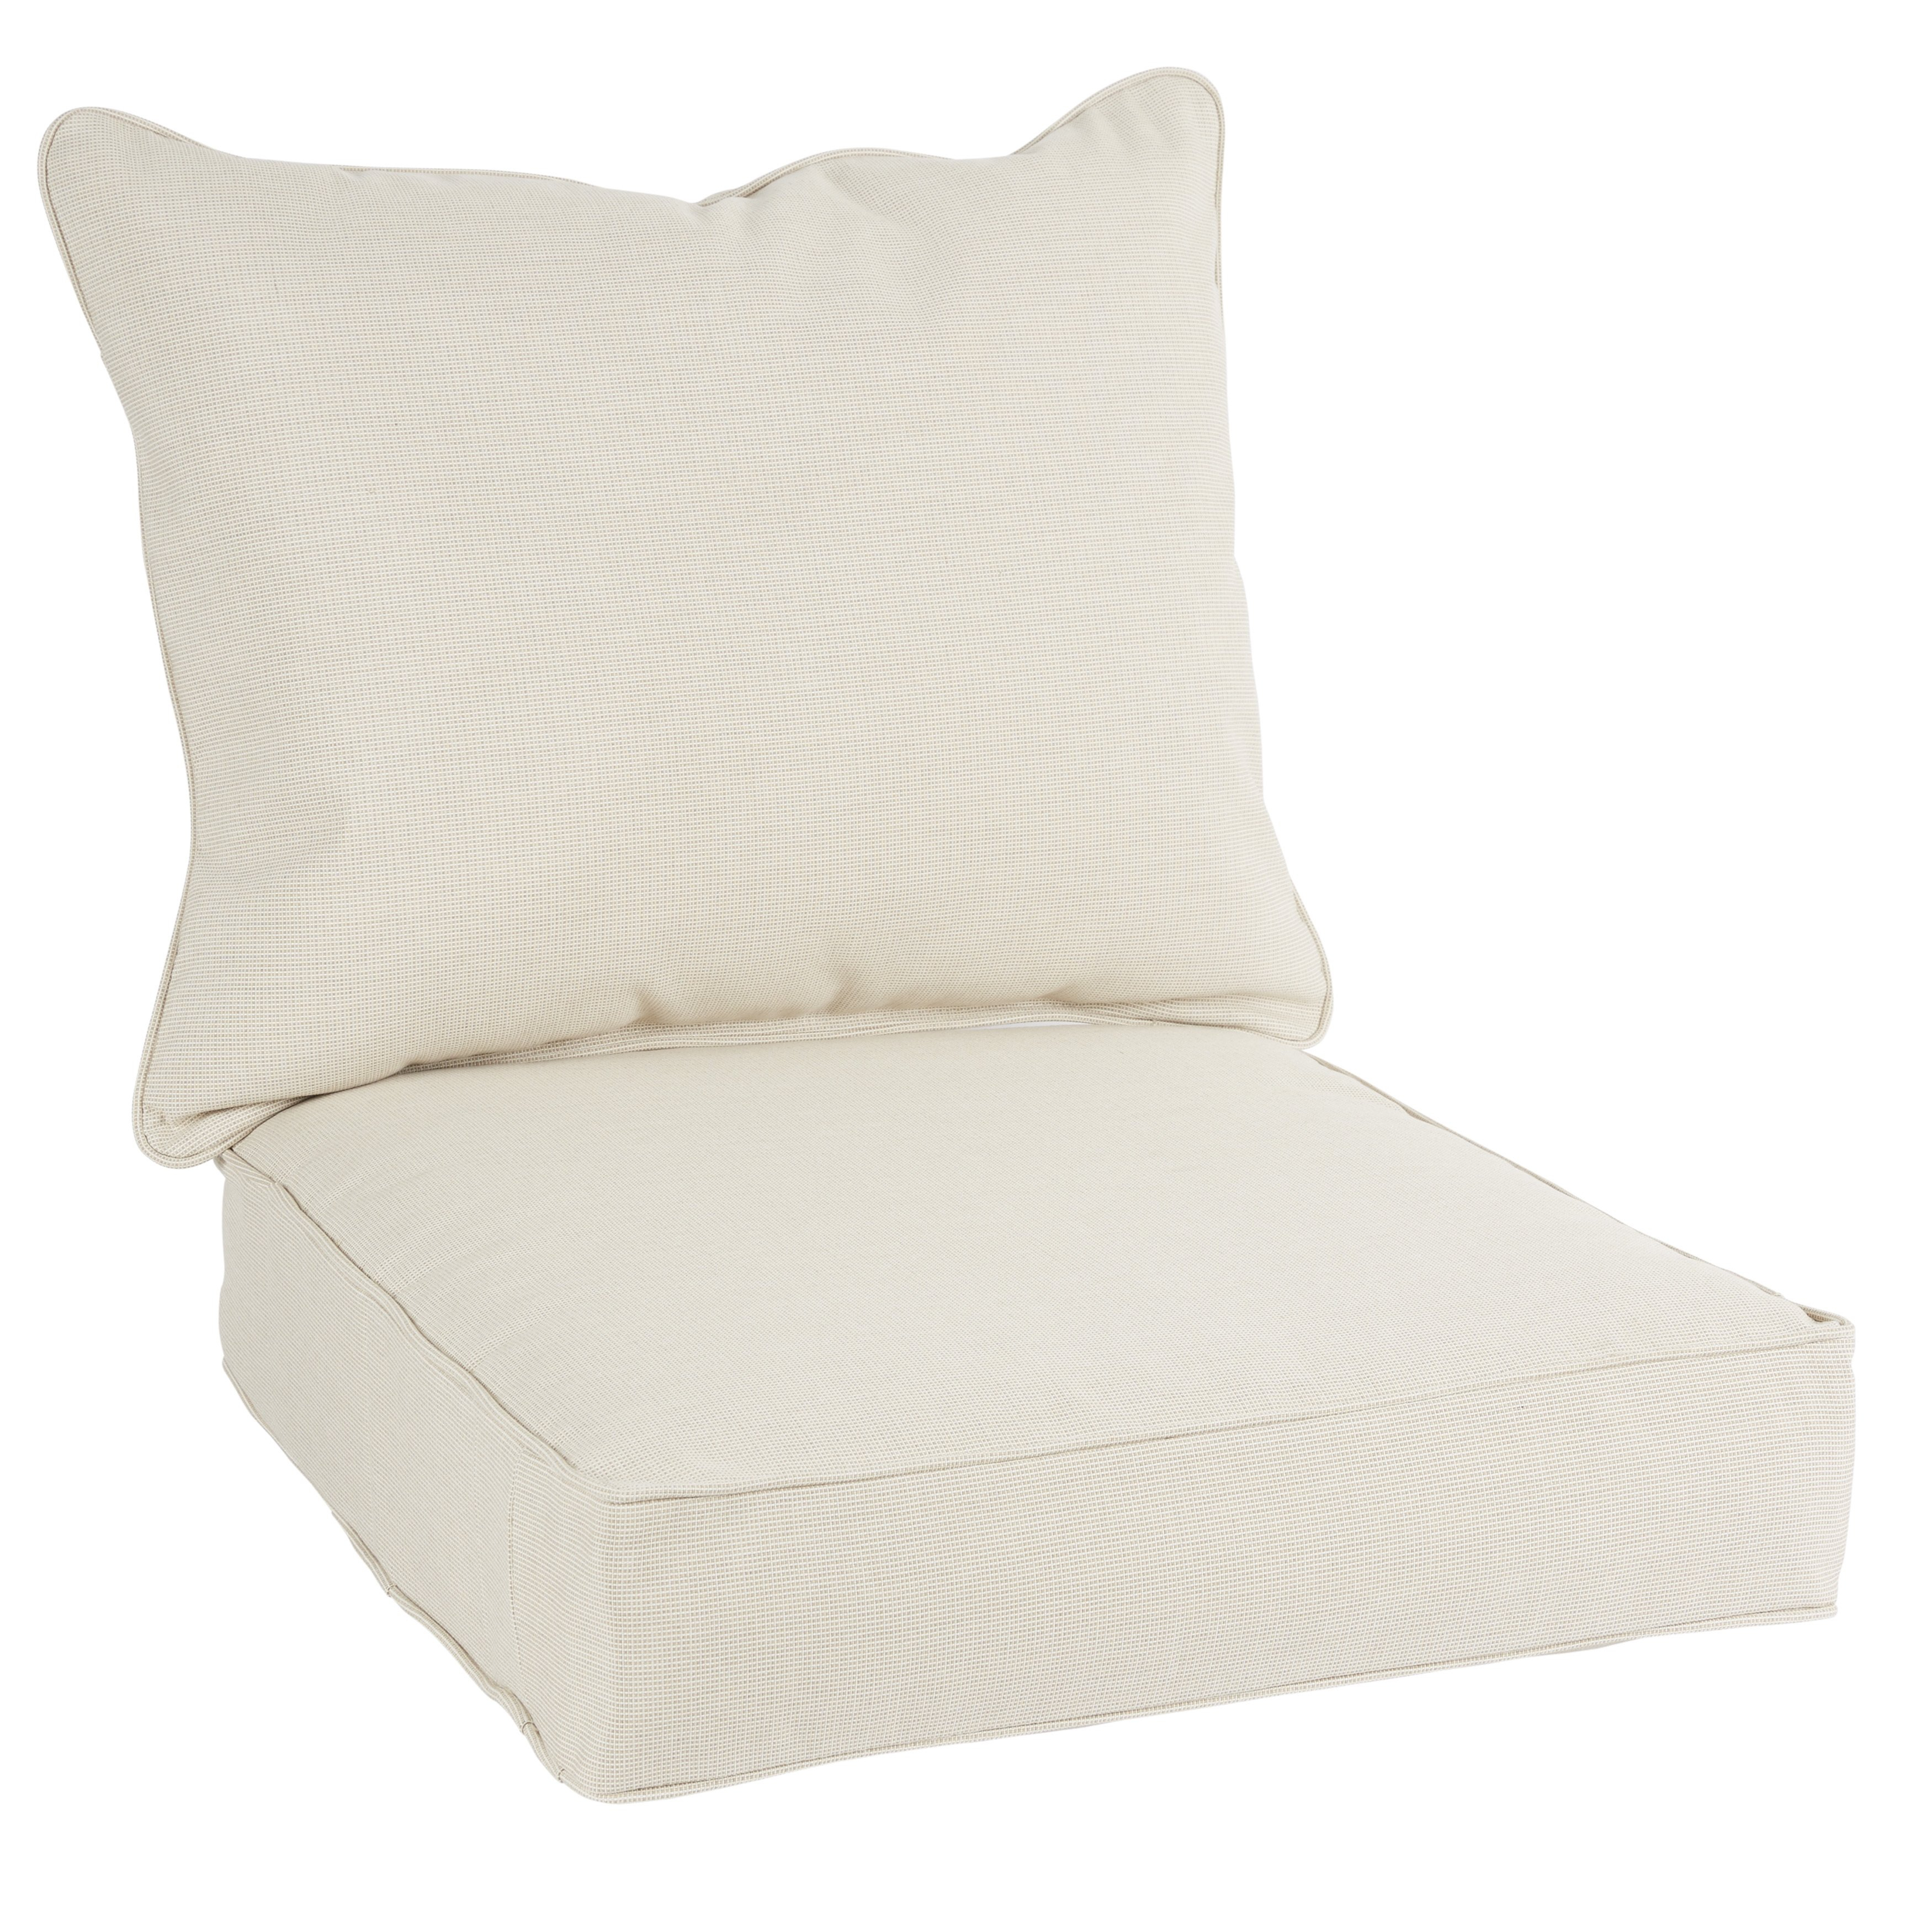 Shop Quinn Sunbrella Volt Sand Indoor/ Outdoor Chair Corded Cushion Intended For Quinn Teak Sofa Chairs (Photo 17 of 20)